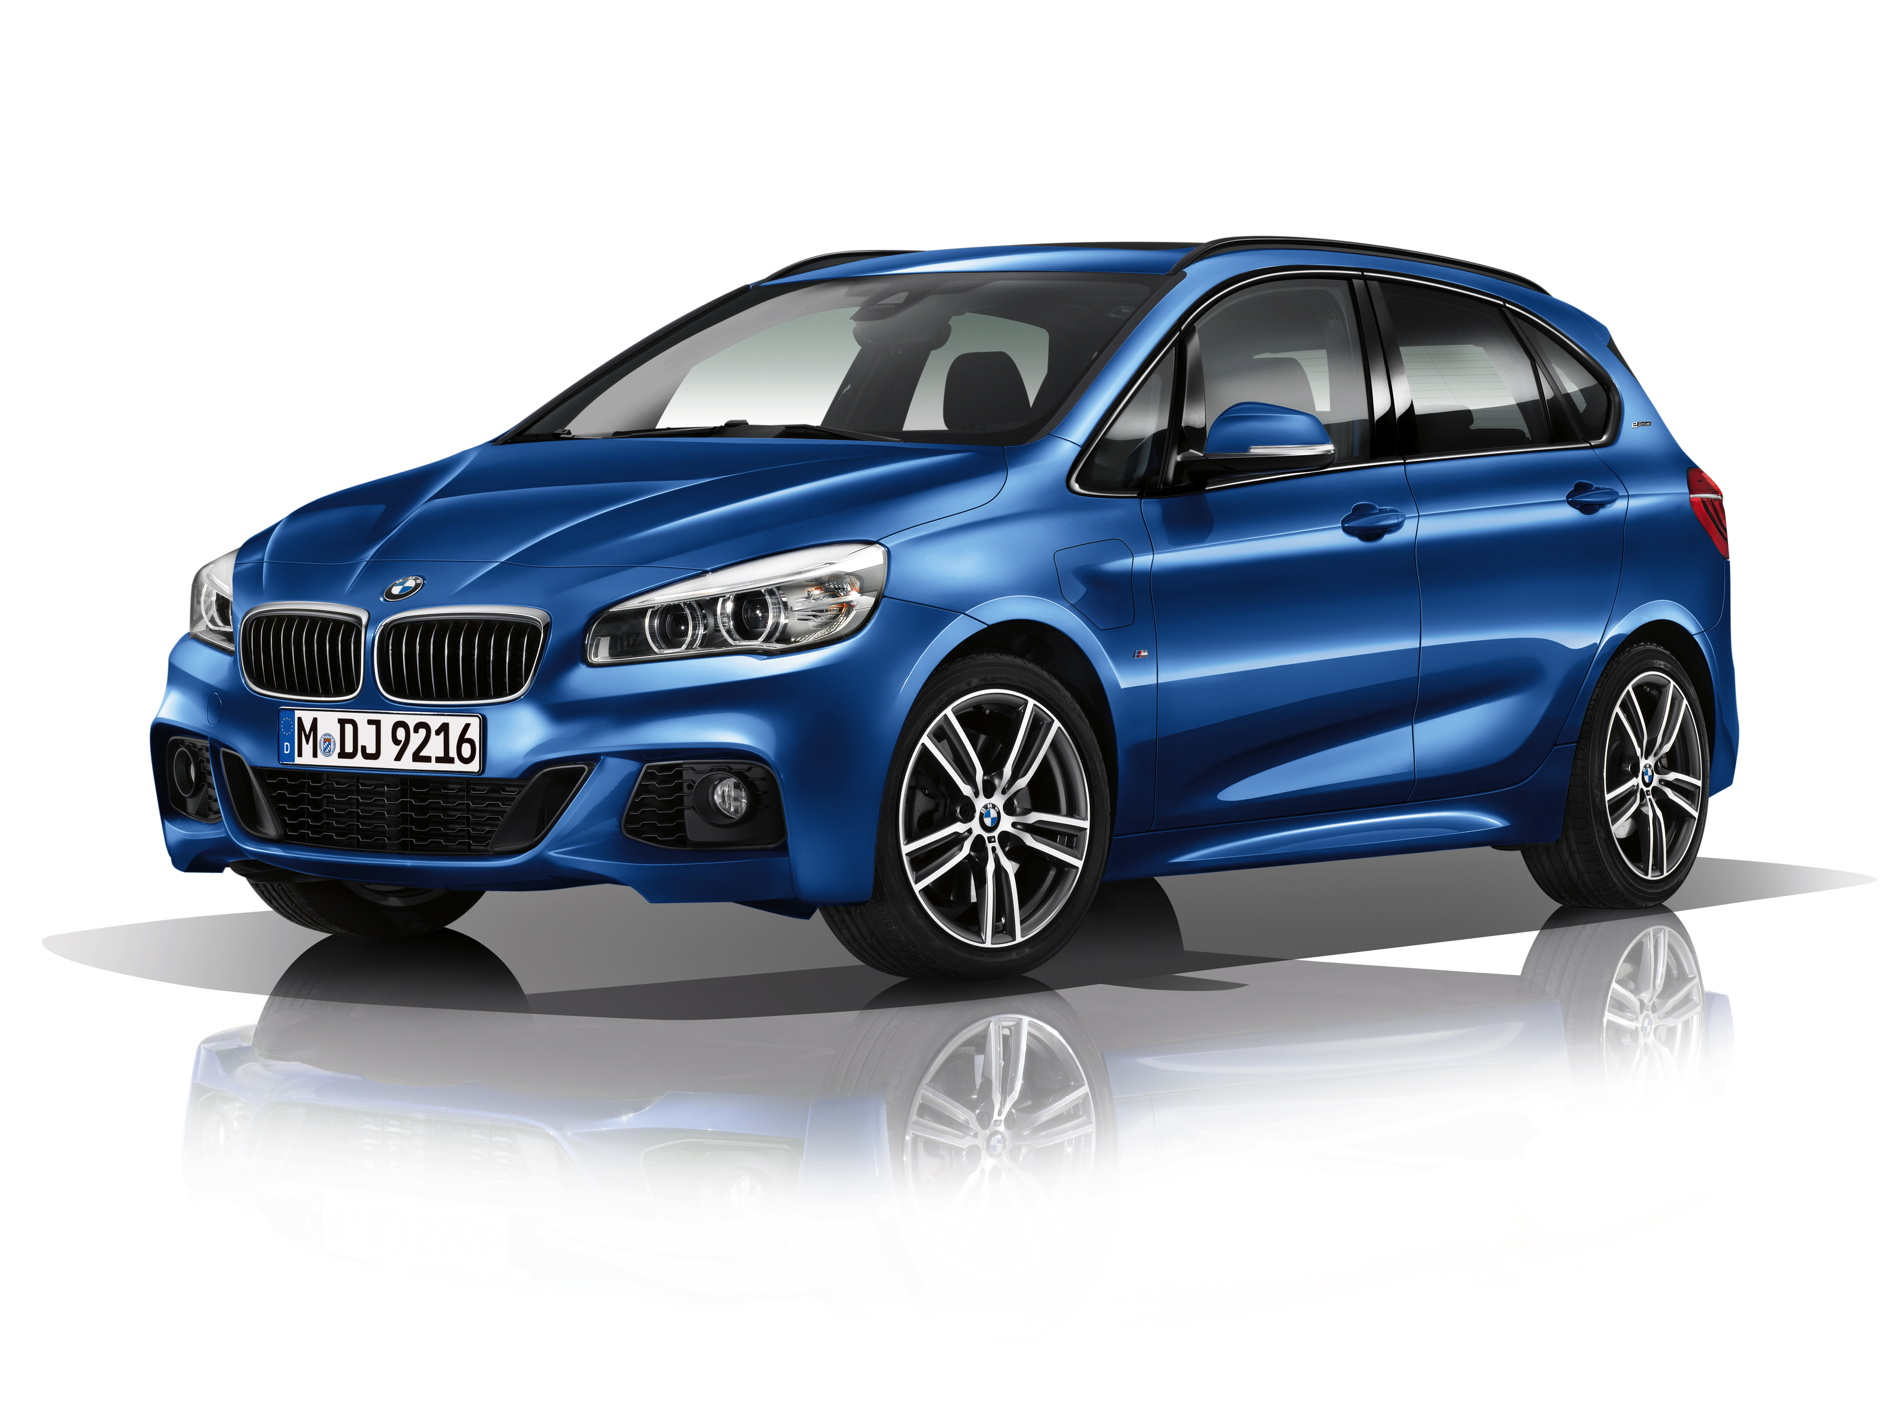 2016 bmw 225xe active tourer hybrid images 16